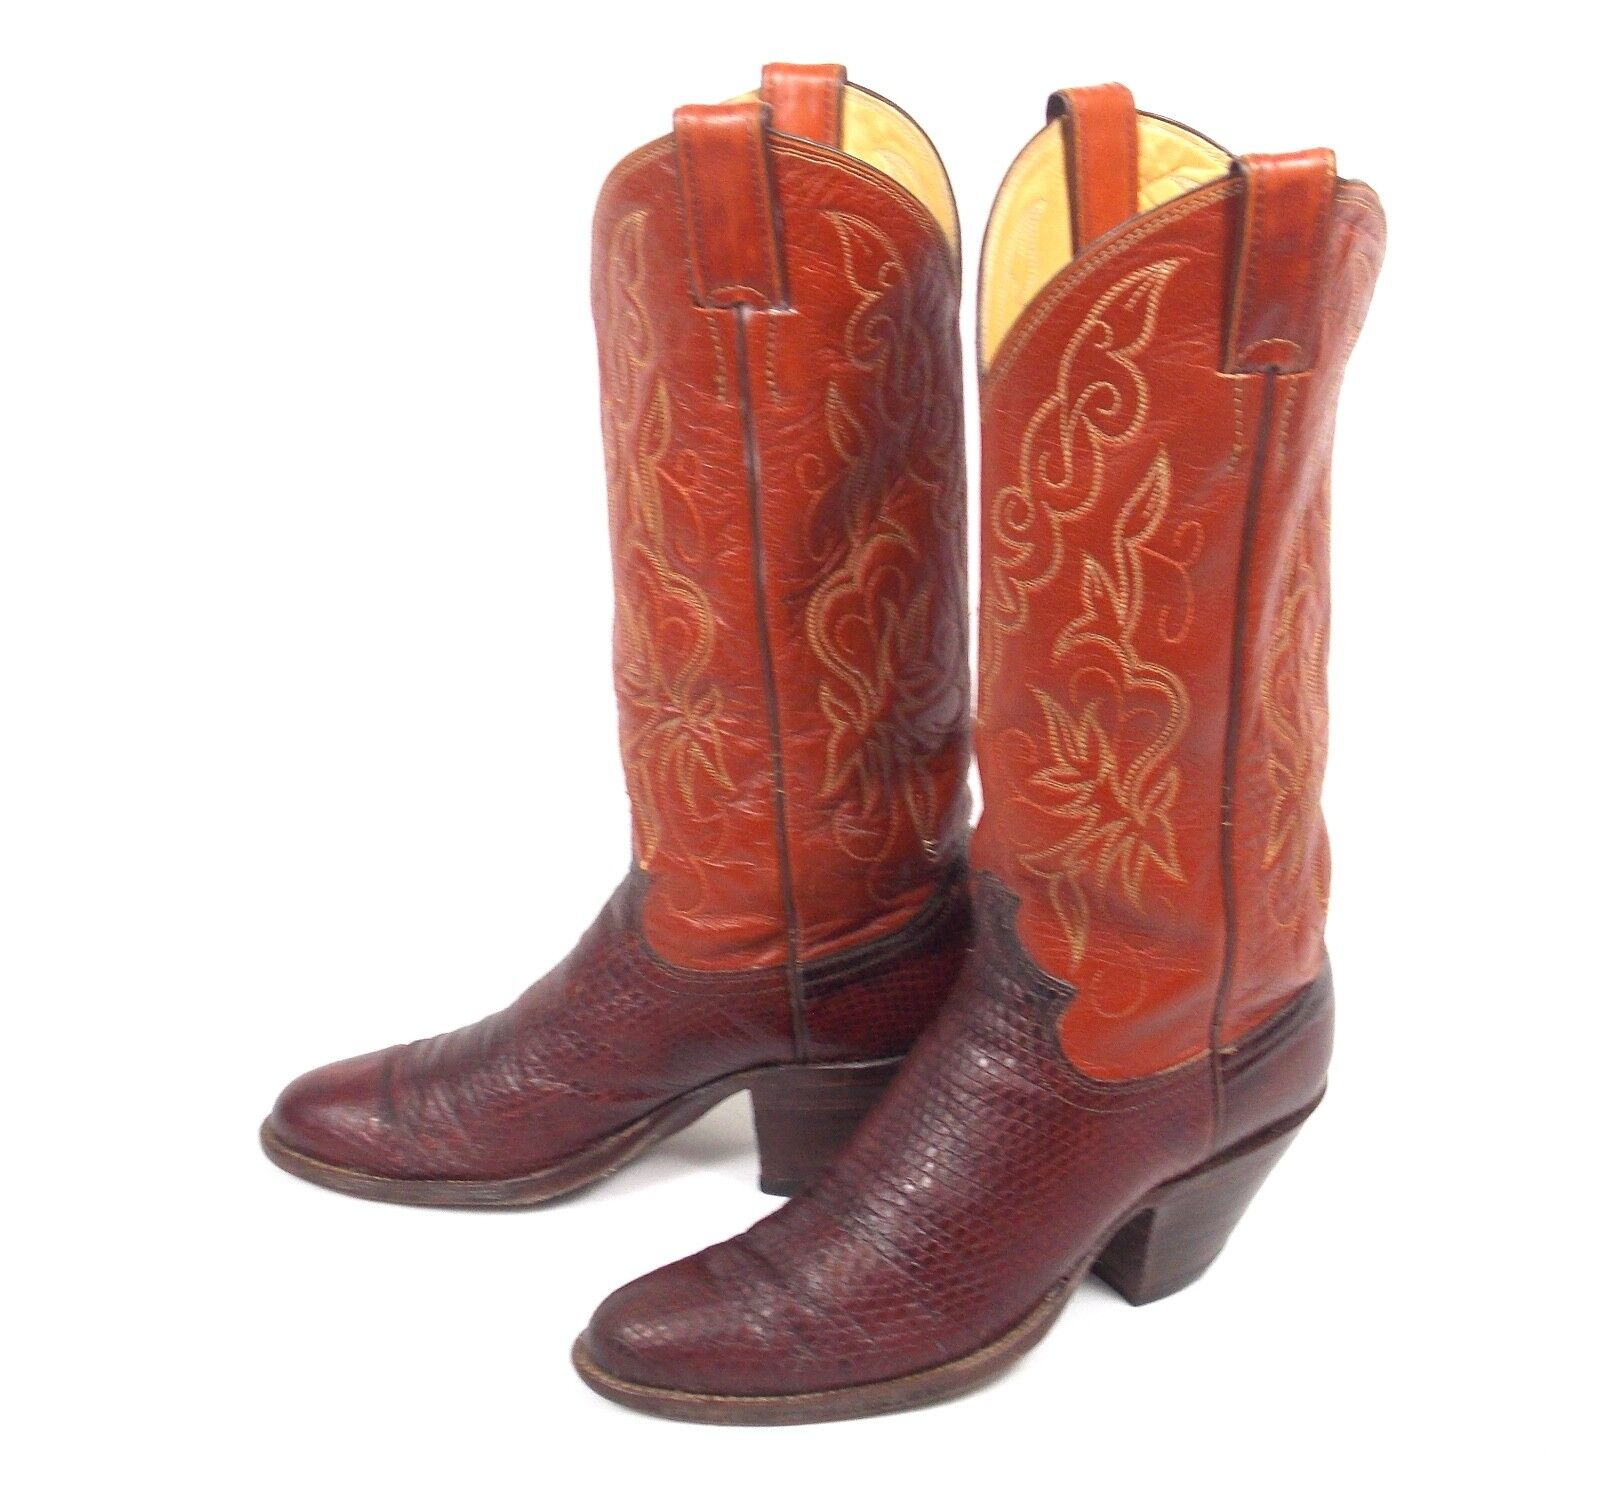 Justin Brown Snakeskin Cowboy Boots - Womens Size 6.5B Vtg Good Cond Tall Heel